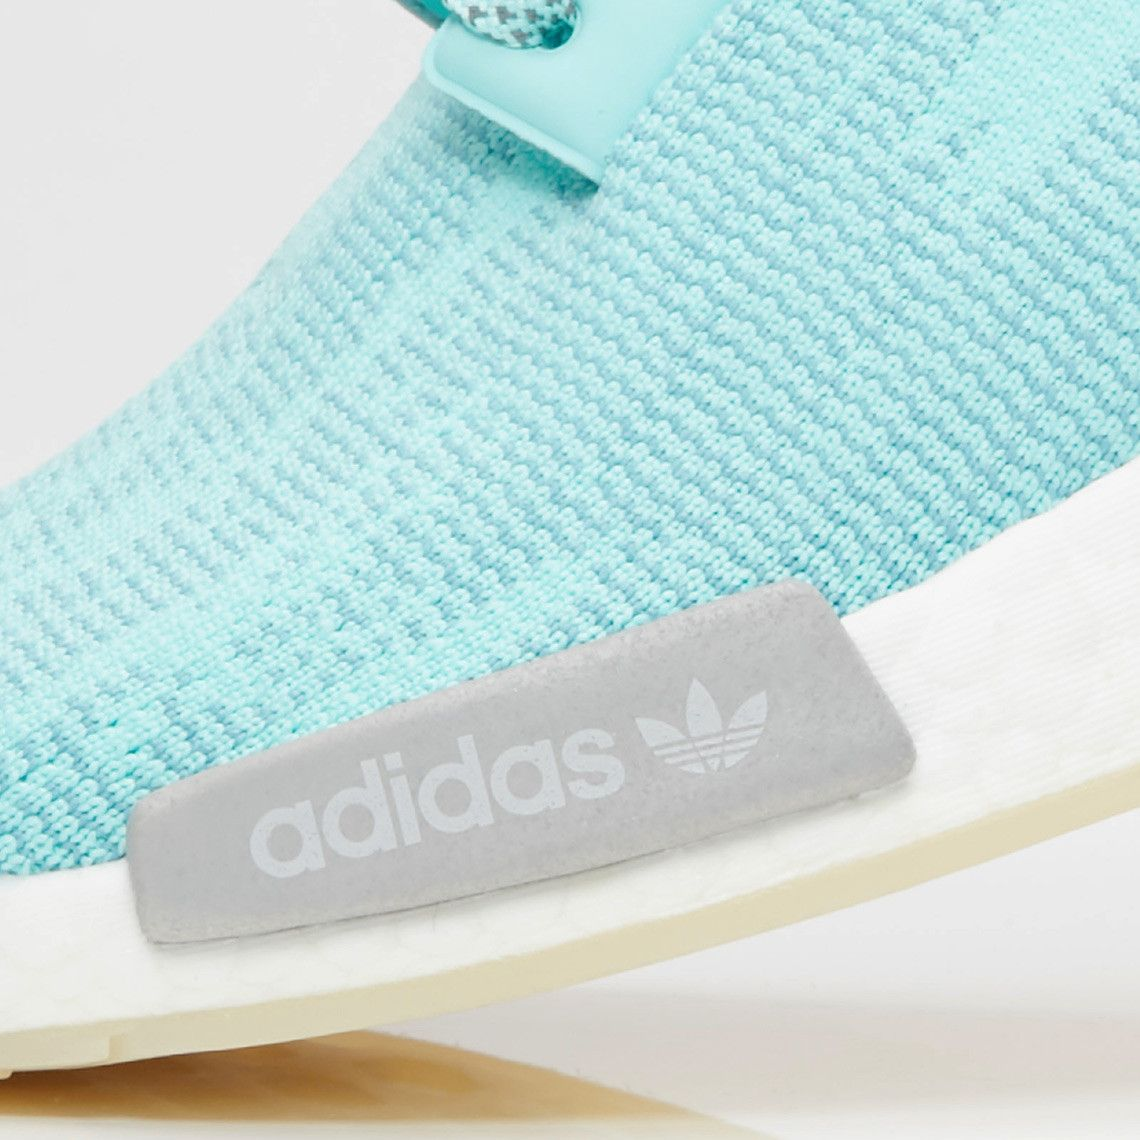 brand new e2d92 53506 The BEST adidas NMD R1 Primeknit Style Returns In Two Summer Colorways